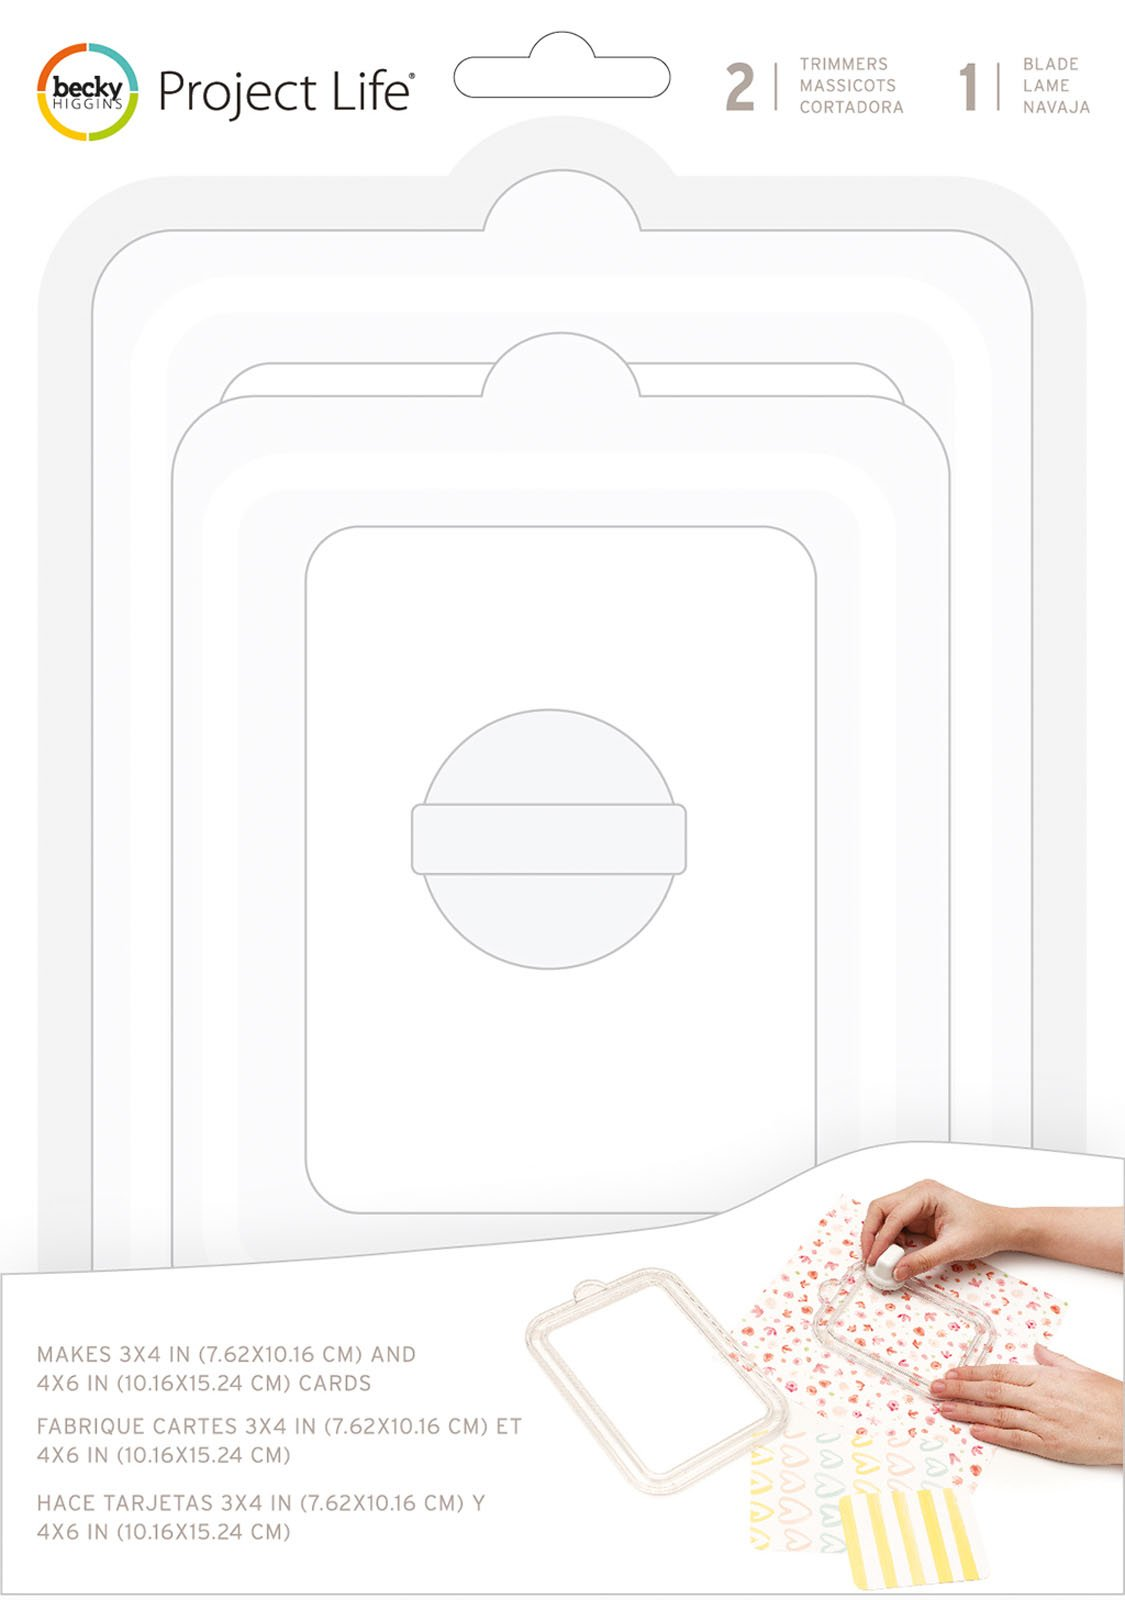 American Crafts Project Life Card Trimmer Kit-